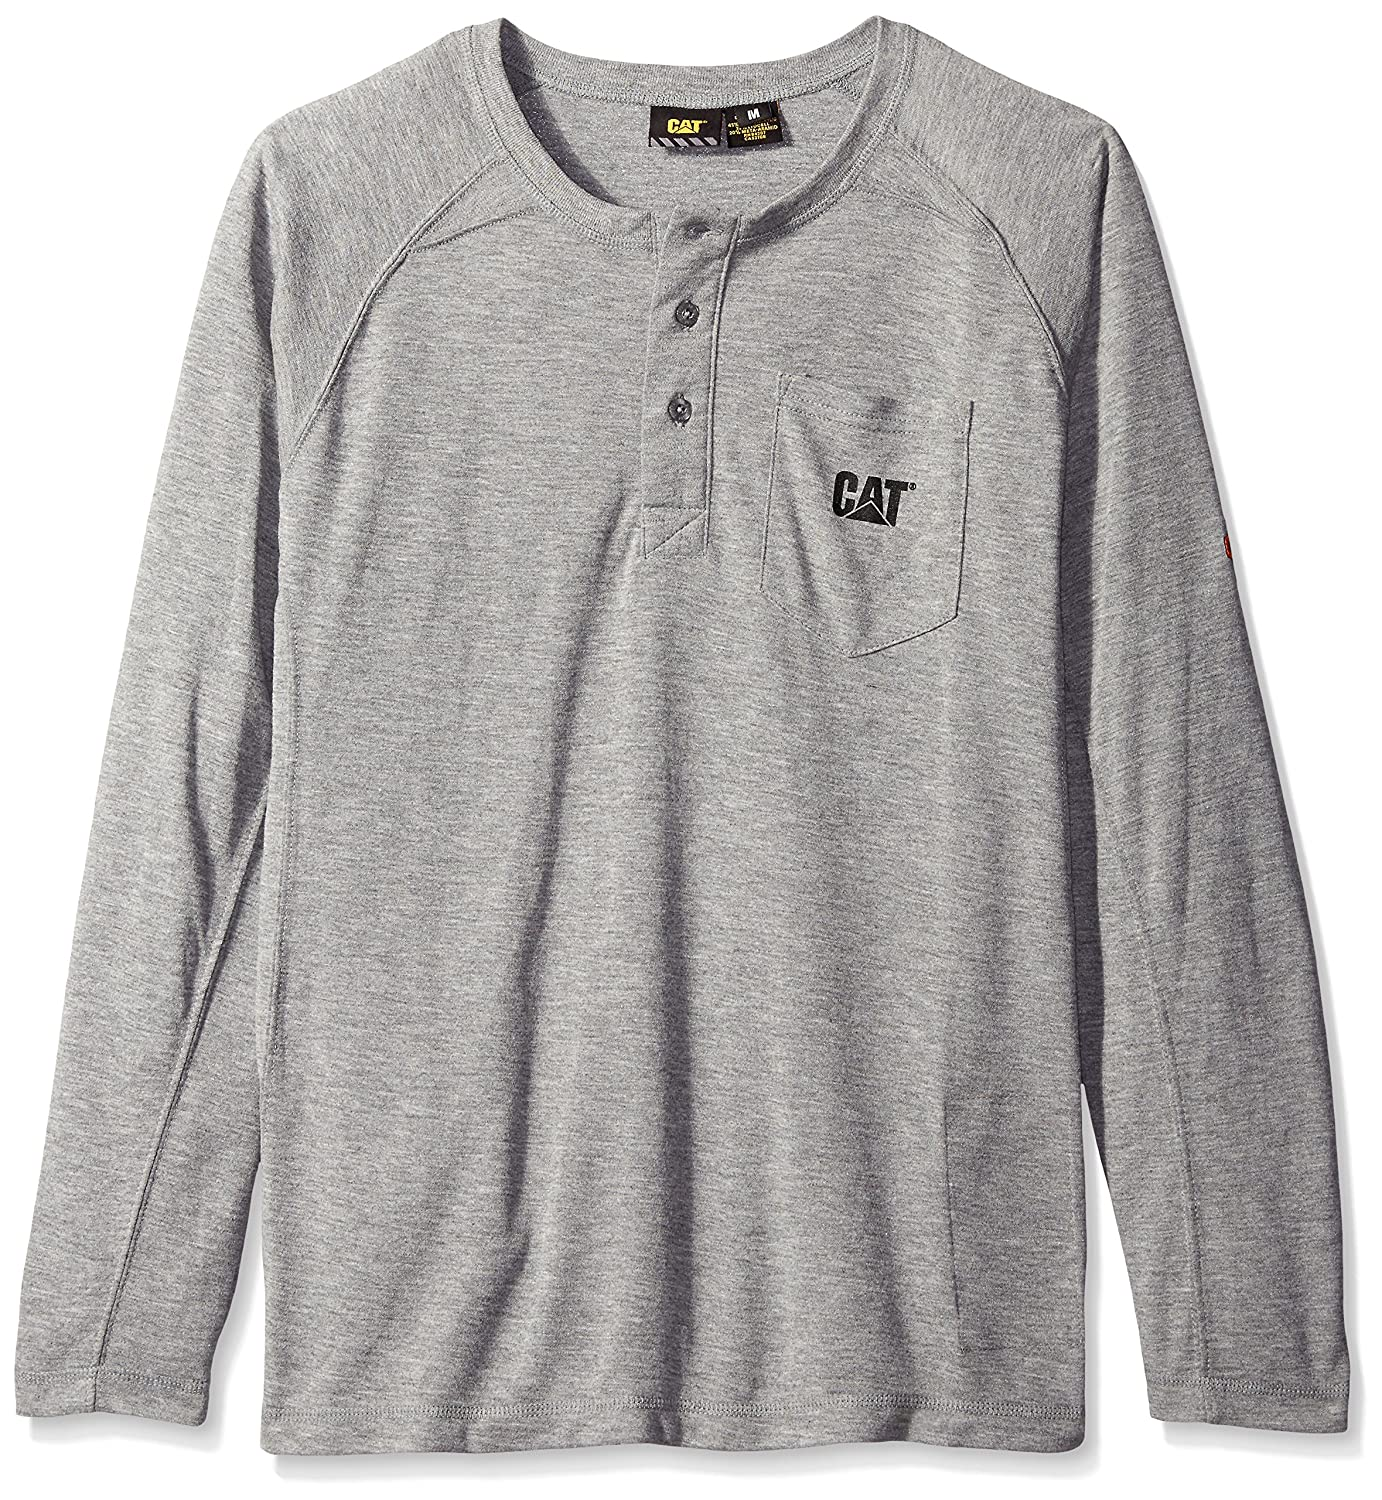 Caterpillar SHIRT メンズ B012HZ993Y 3L|Flame Resistant Heather Grey Flame Resistant Heather Grey 3L